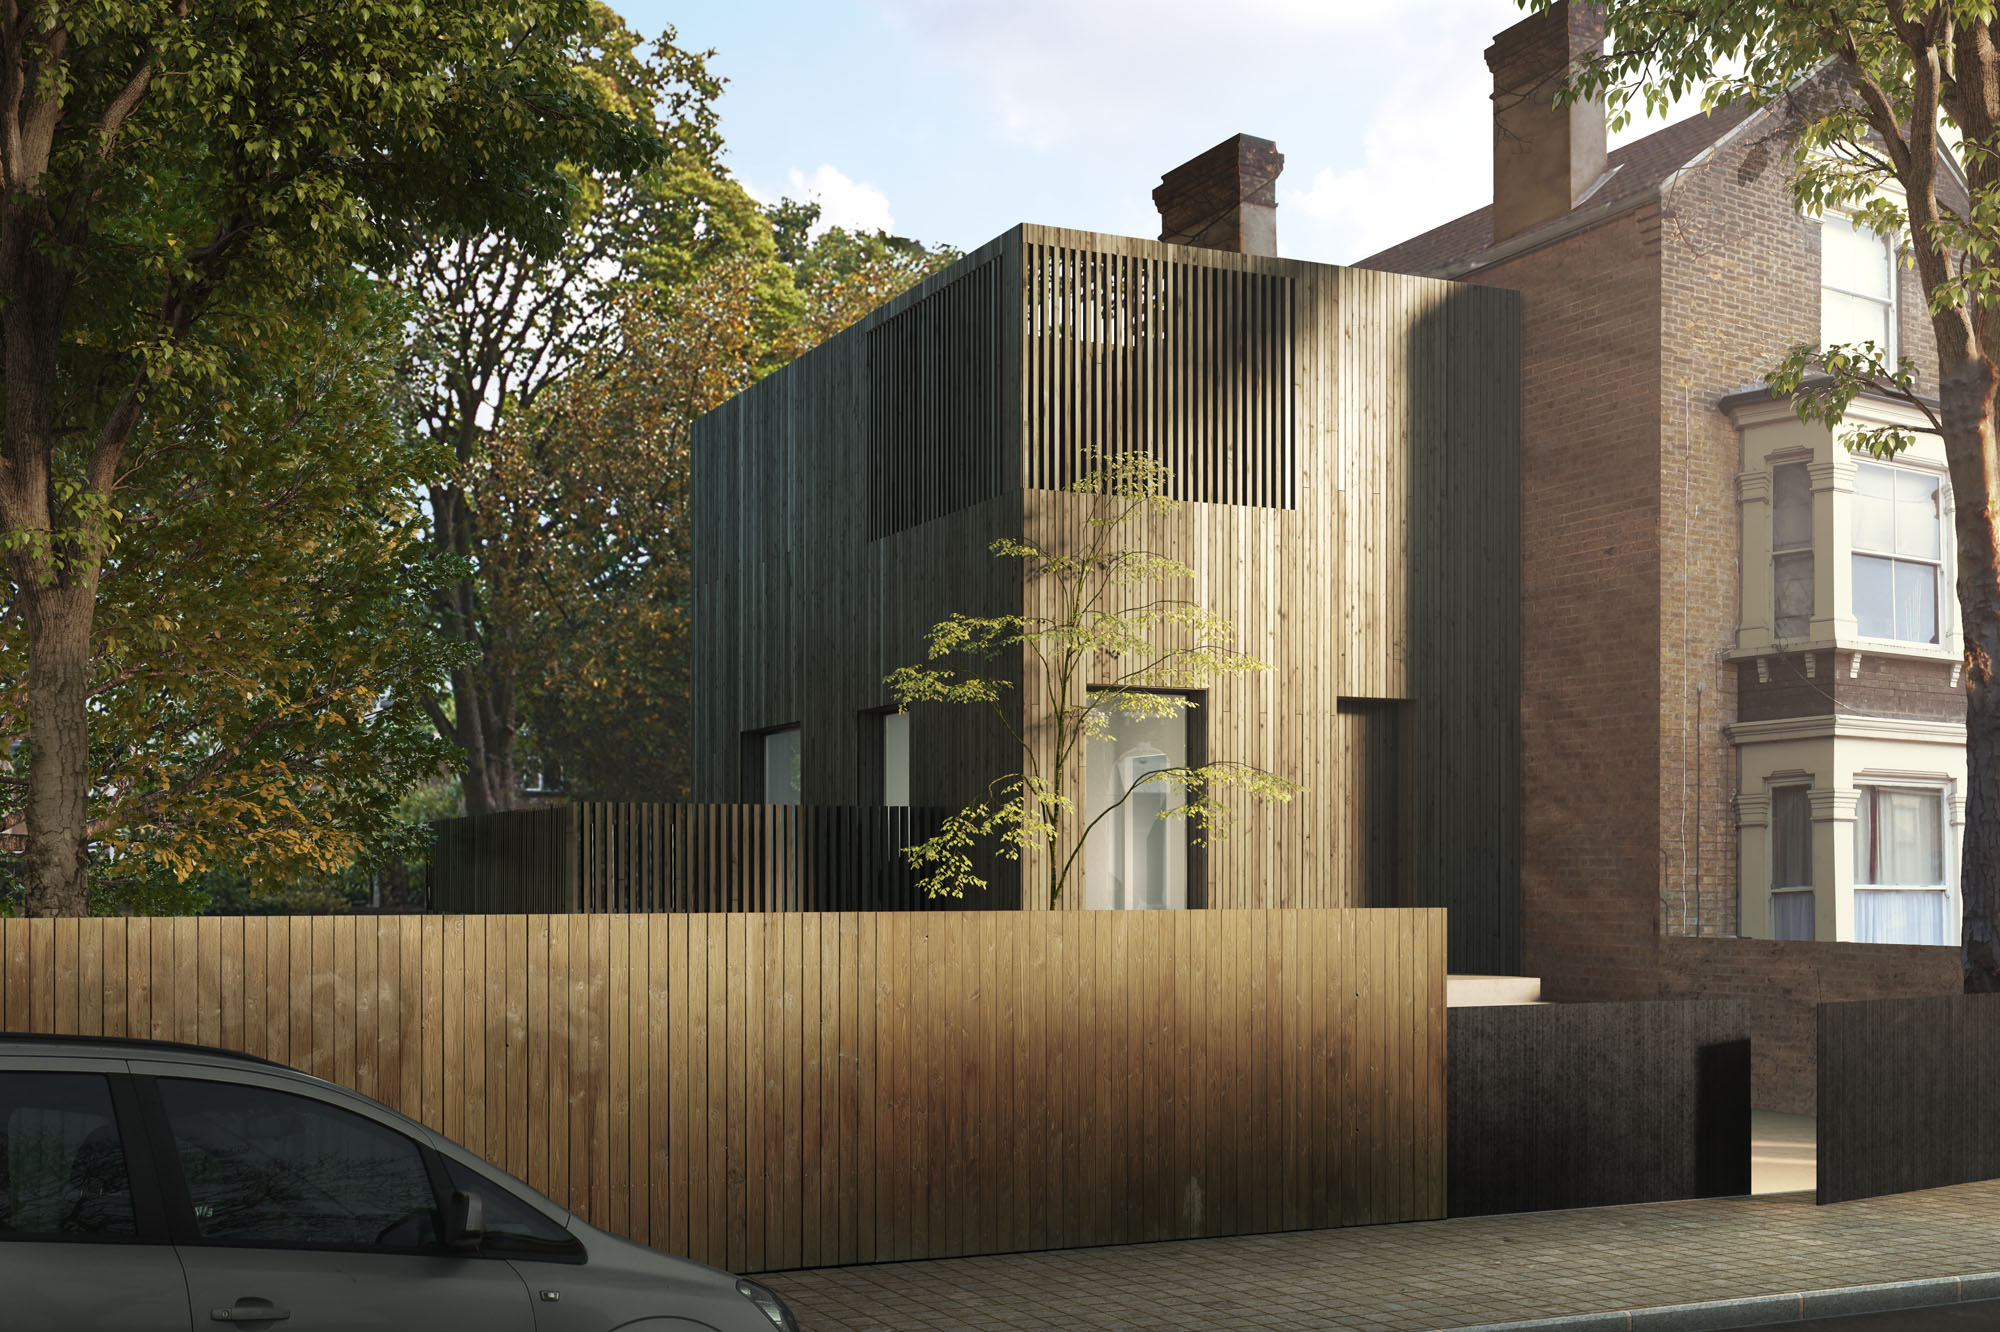 cube-haus-adjaye-associates-architects-cs-2000px-01